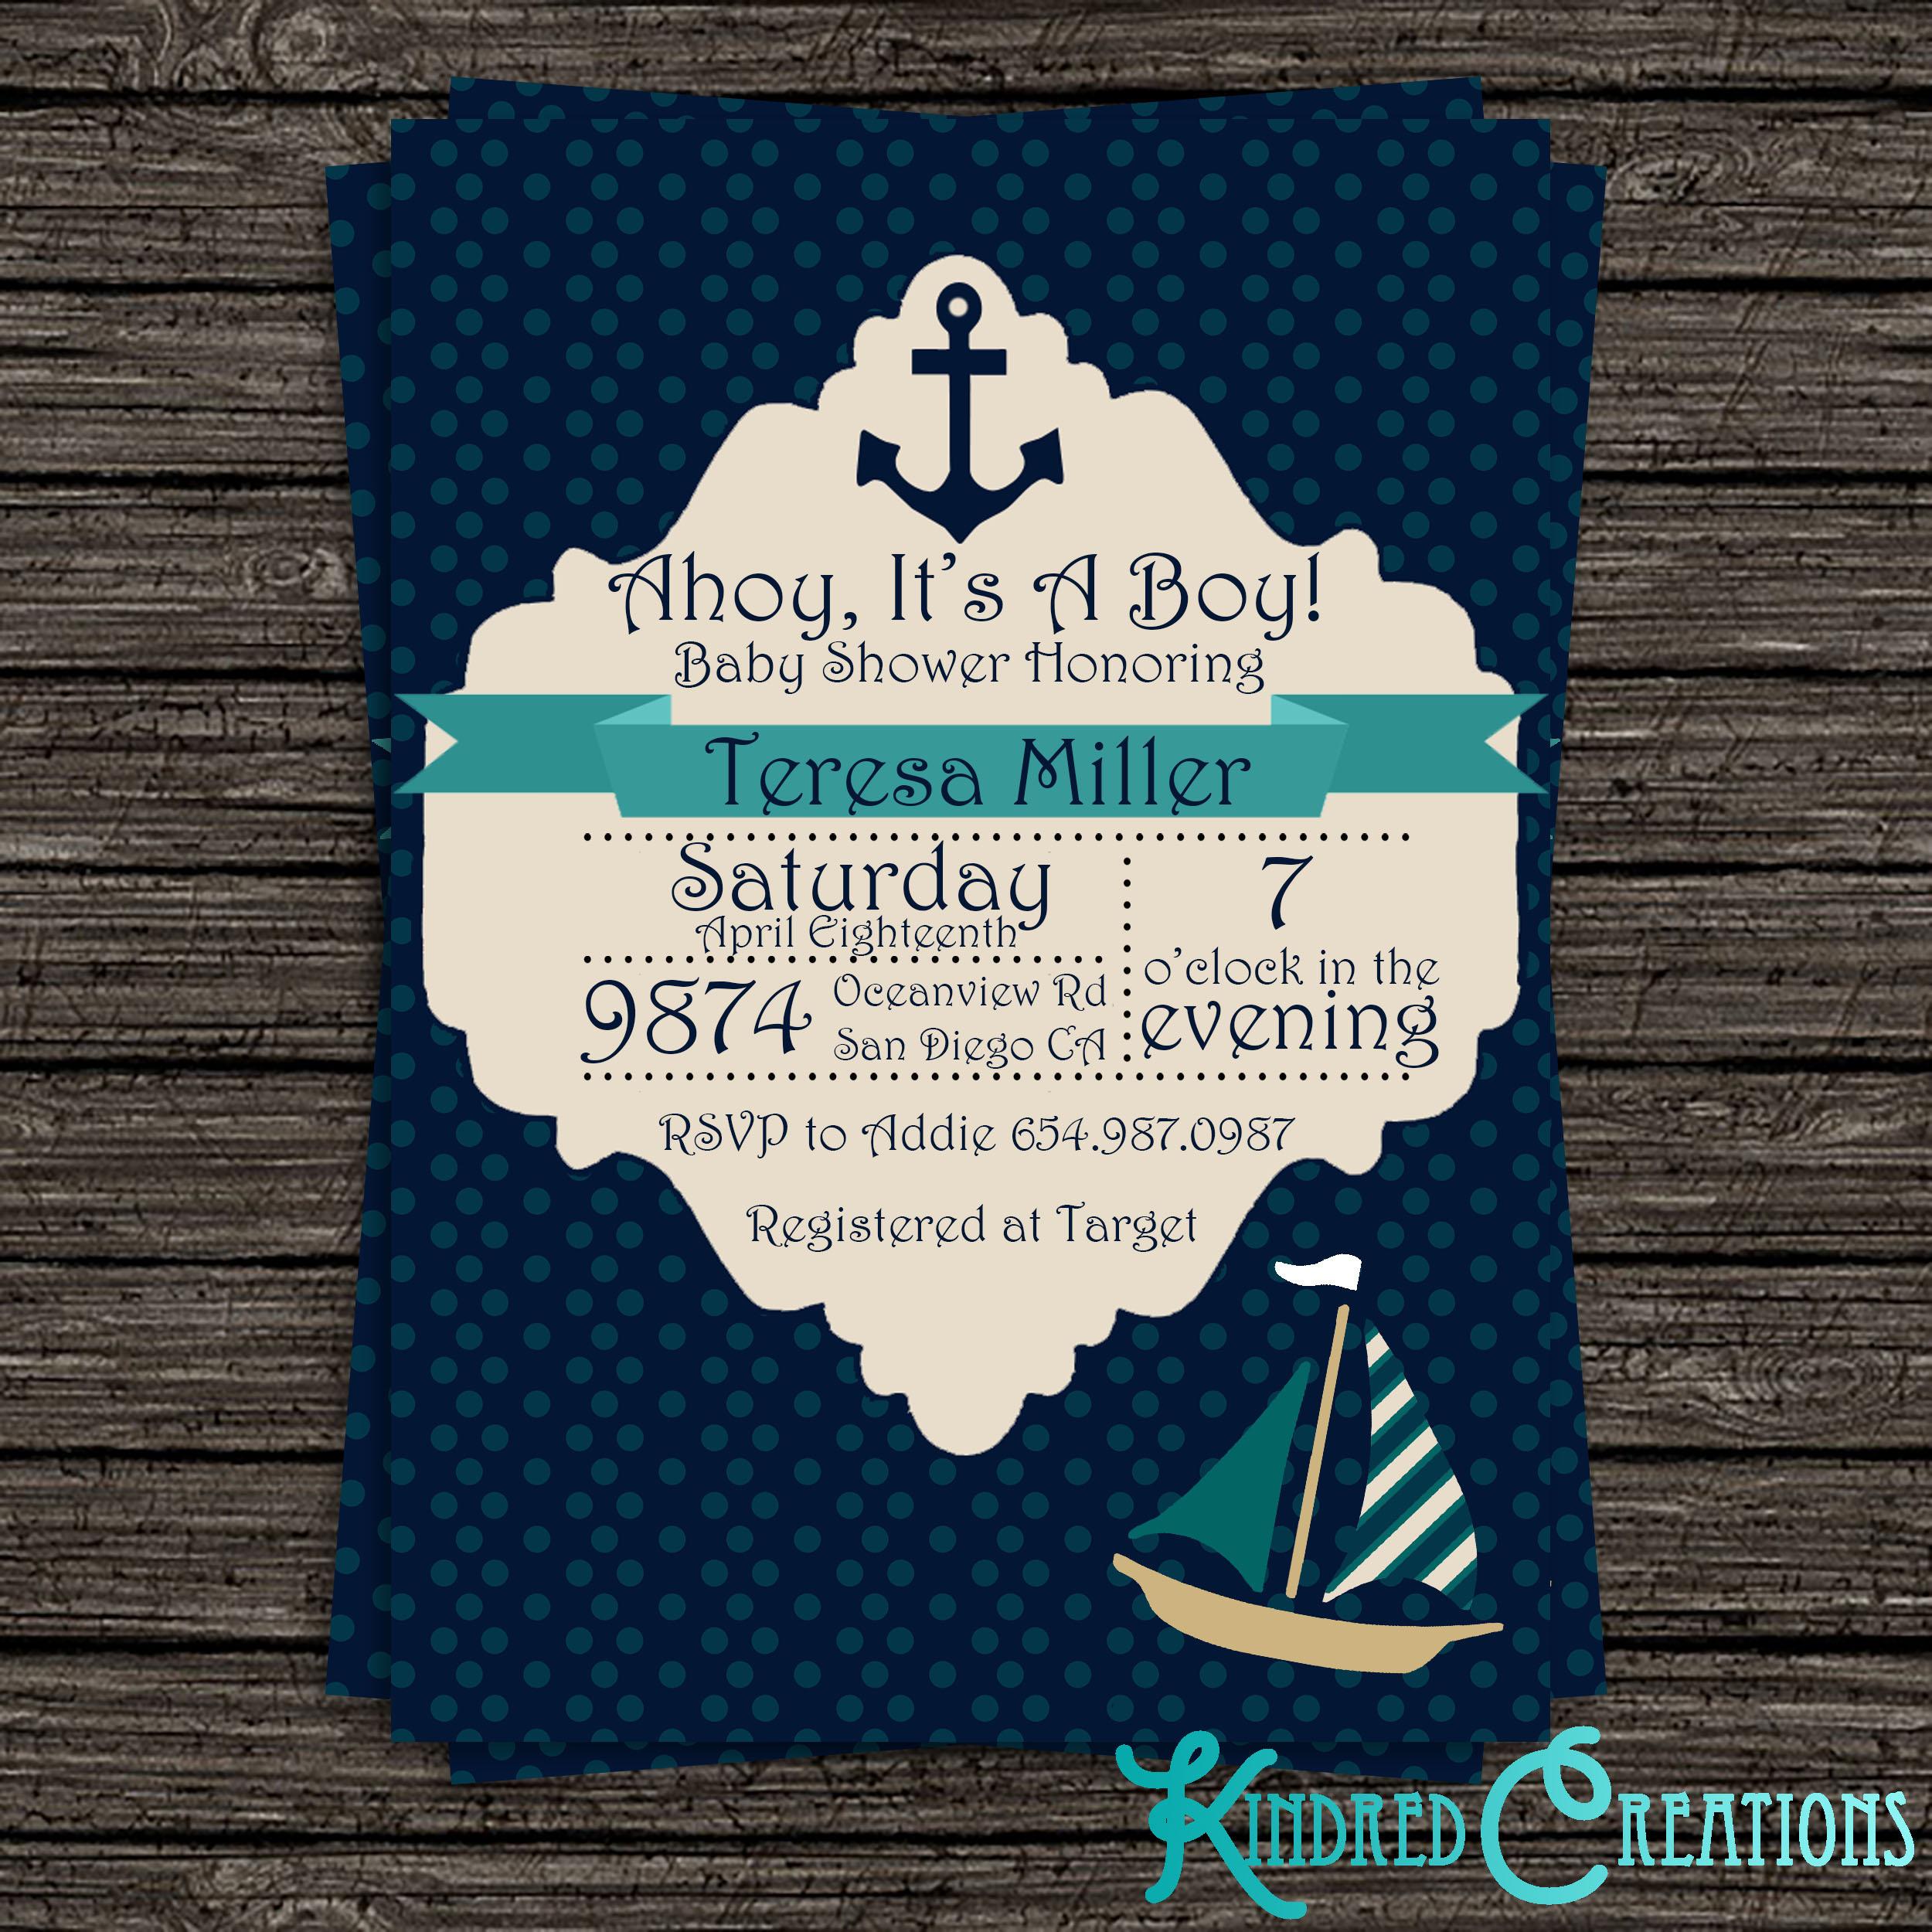 Full Size of Baby Shower:baby Shower Invitations For Boys Homemade Baby Shower Decorations Baby Shower Ideas Nursery Themes For Girls Elegant Baby Shower Oriental Trading Baby Shower Baby Shower Favors Ideas For Baby Shower Centerpieces